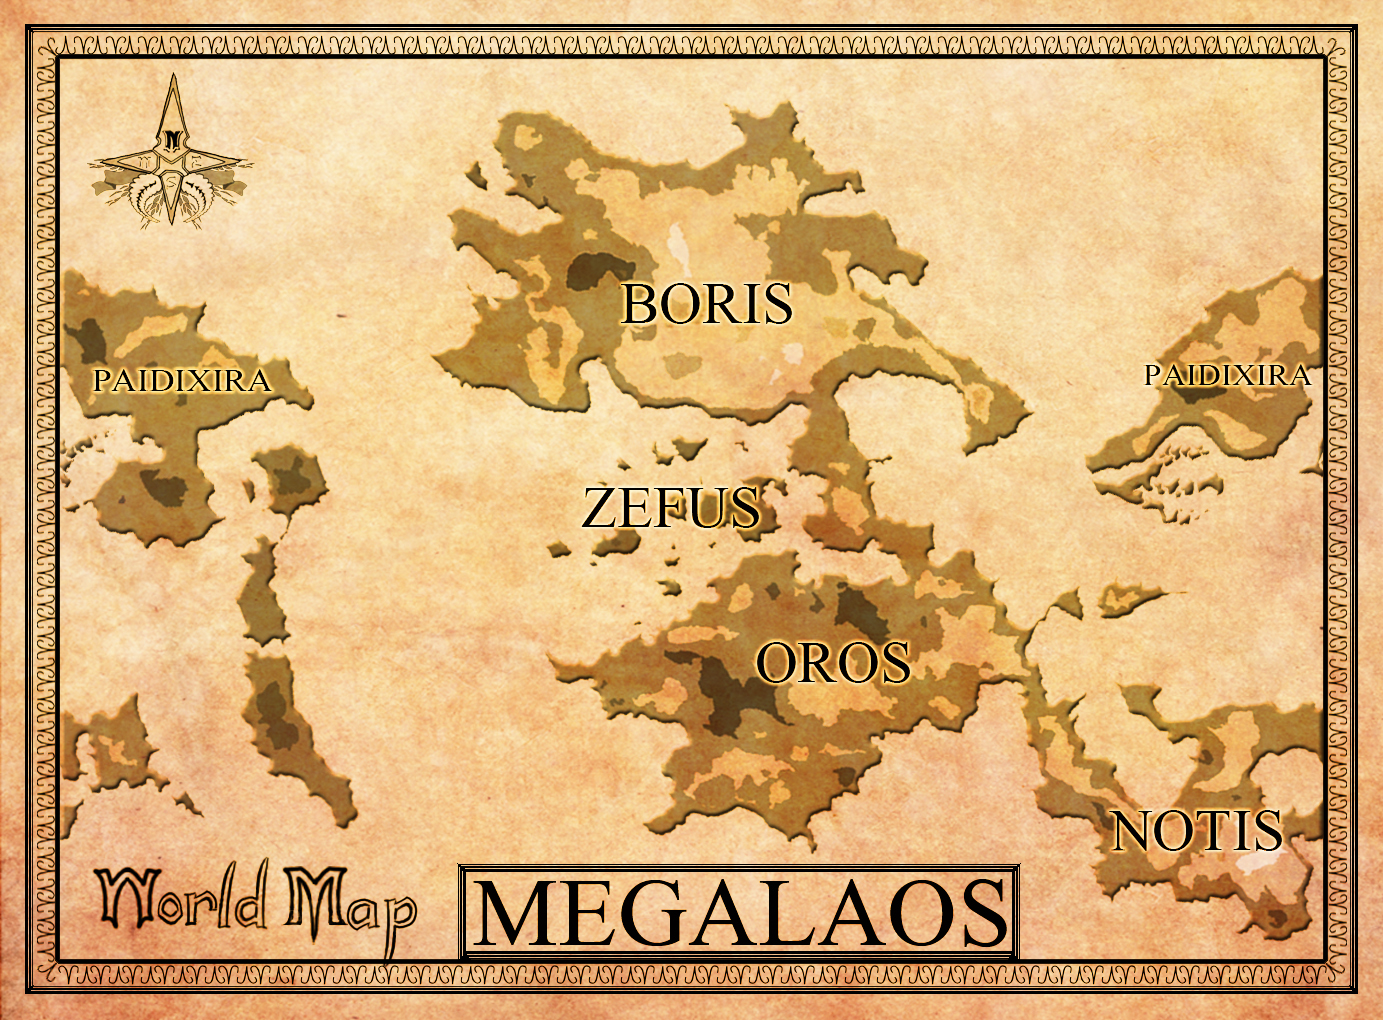 A world map! Paidixira was really my main focus the whole time, so the Megacontinent in the middle is really under produced.